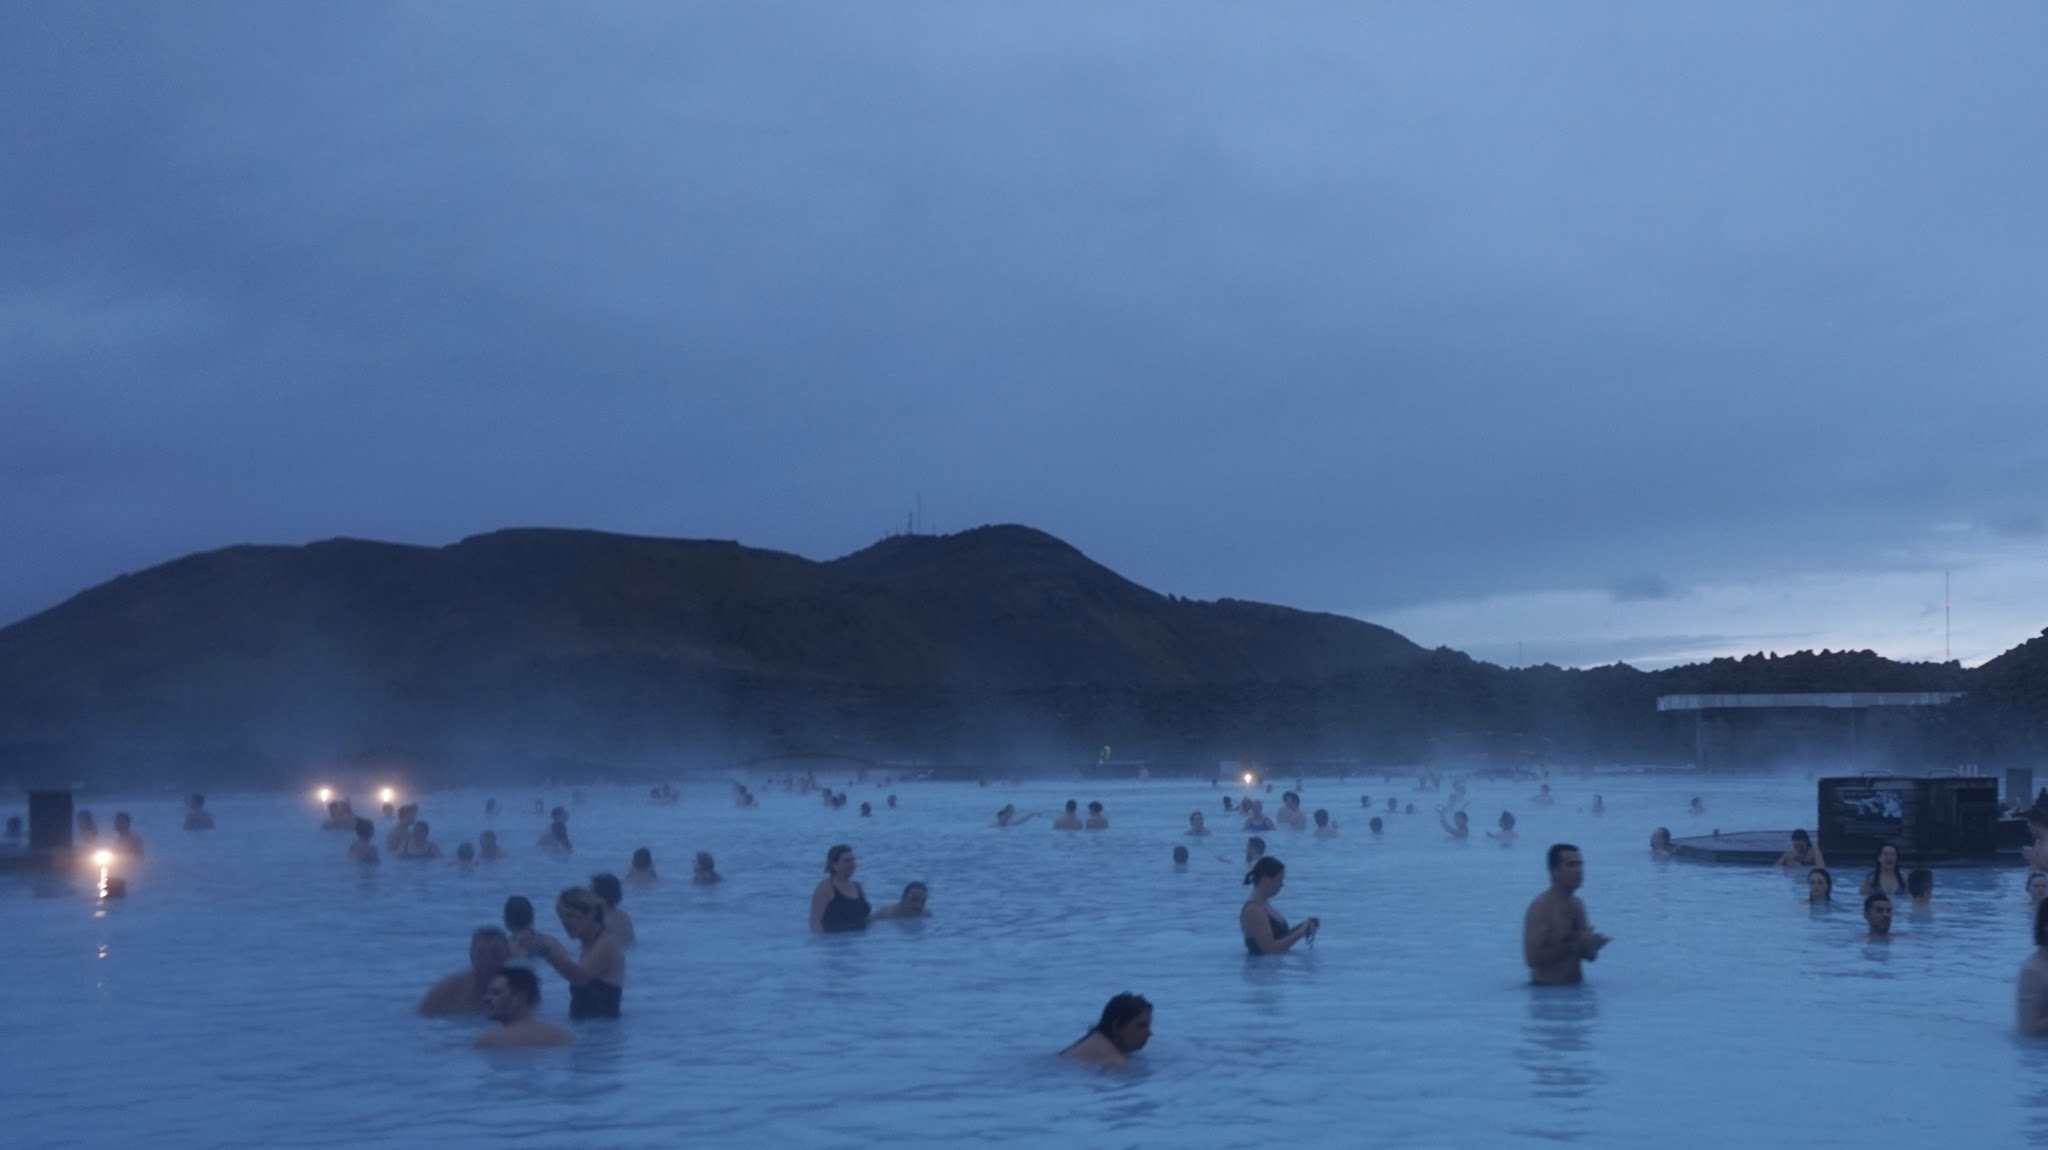 evening, lots of people swimming, steam rising off the water into the atmosphere